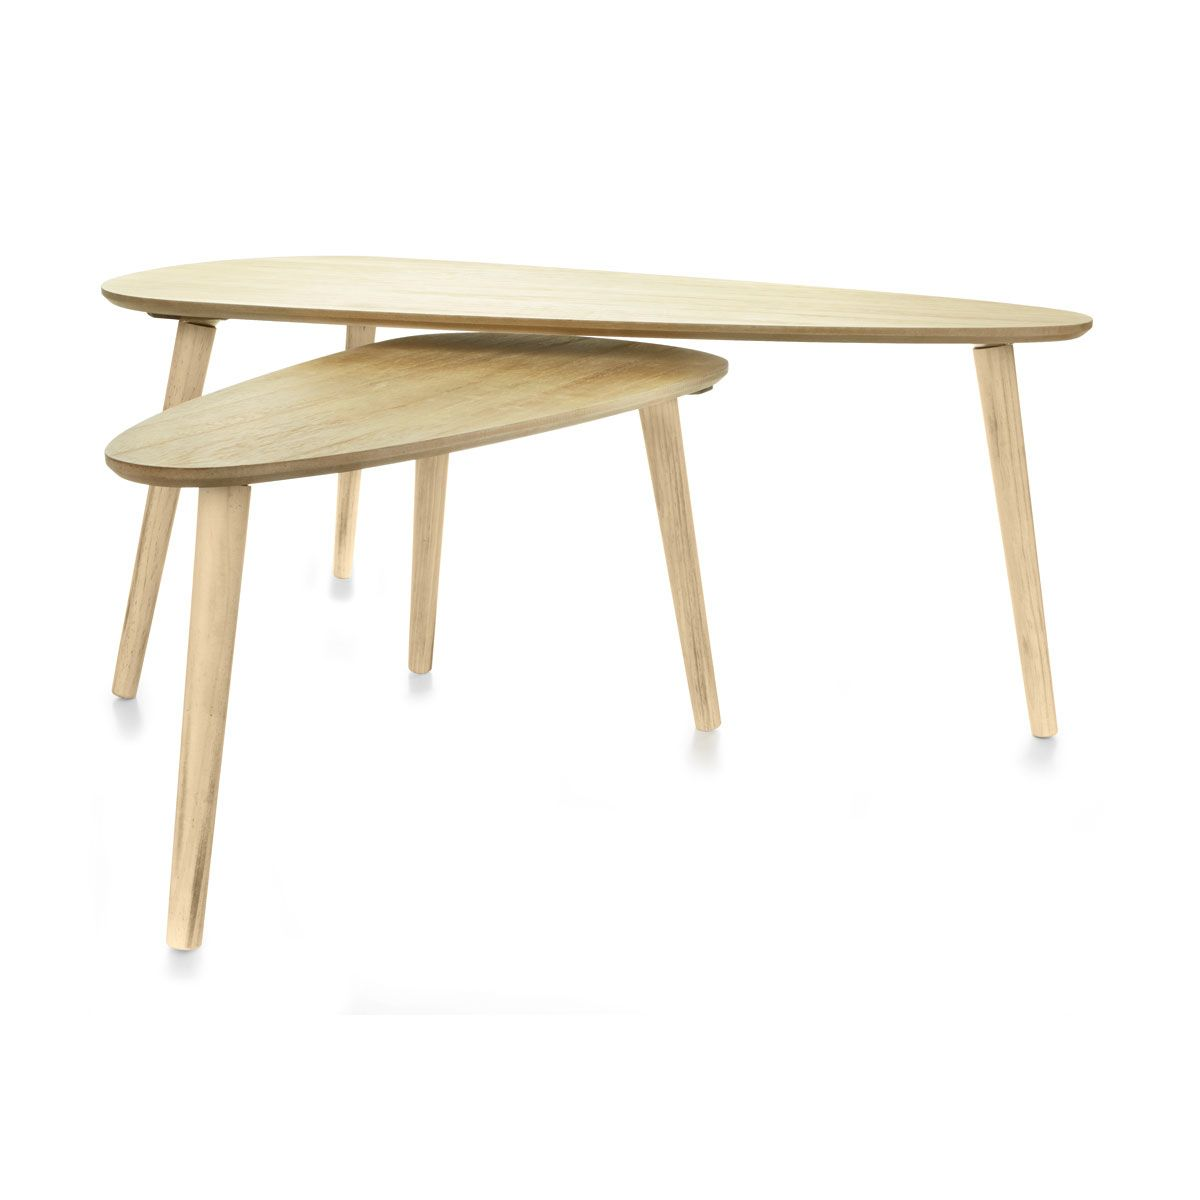 Coffee tables natural set of 2 kmart home decor pinterest coffee tables natural set of 2 kmart geotapseo Image collections